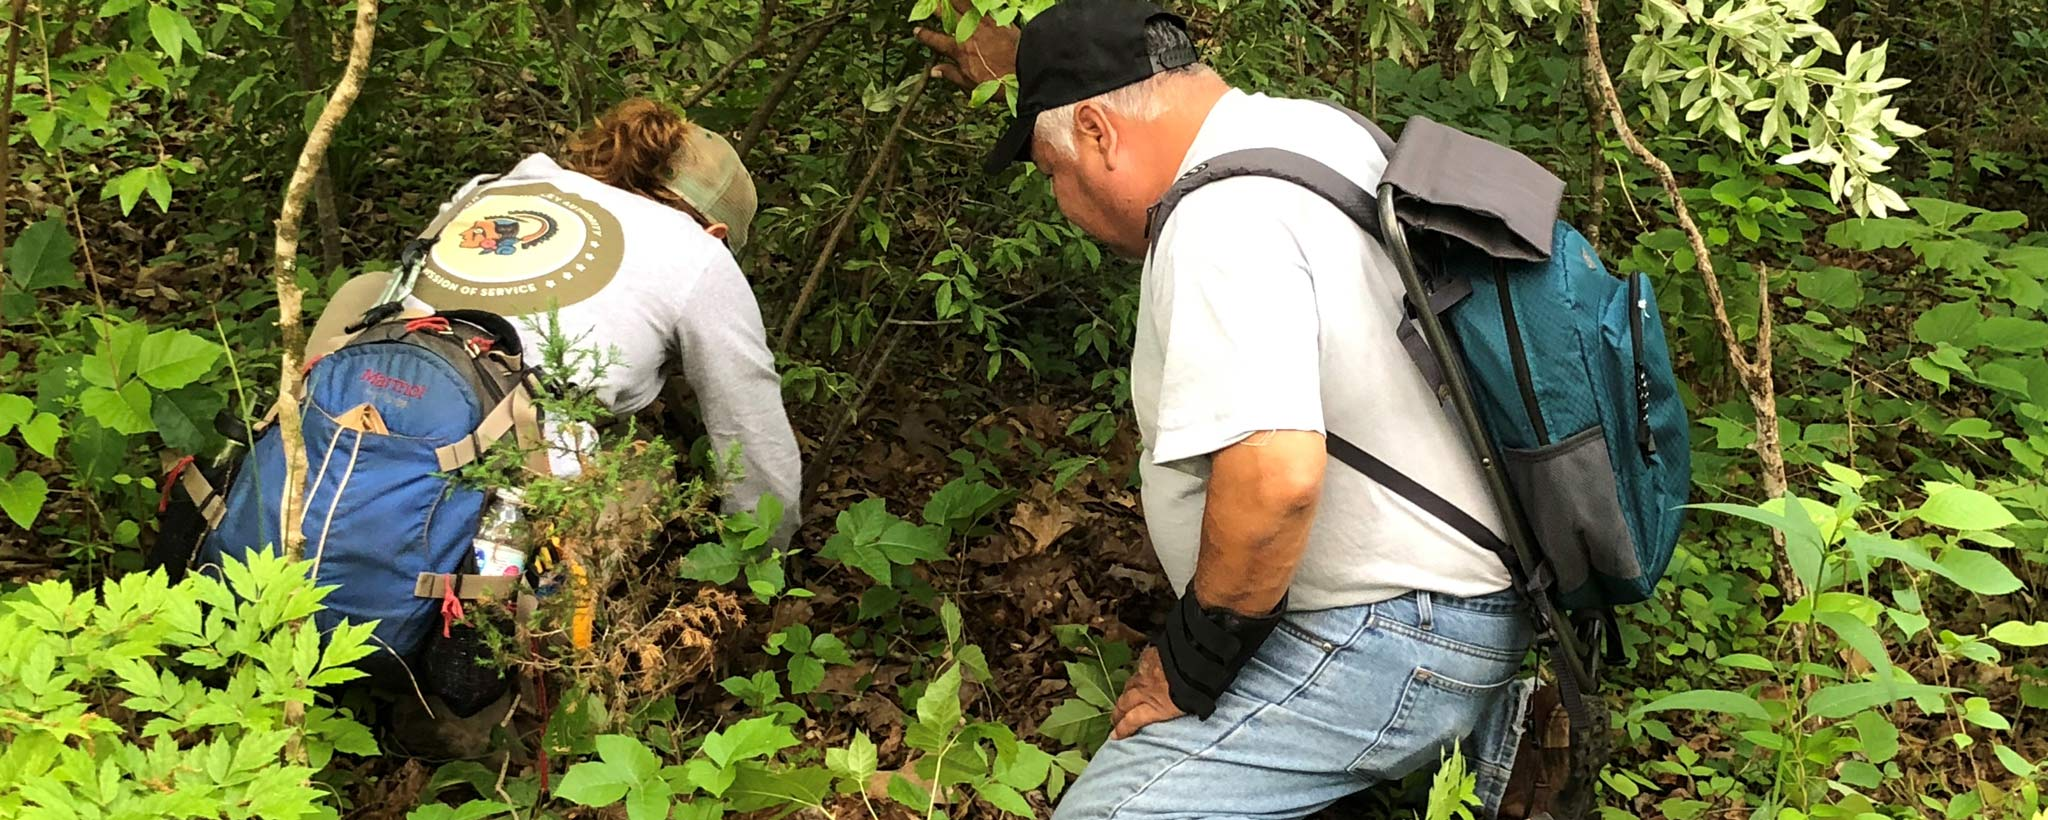 TVA archaeologist working with tribal partner